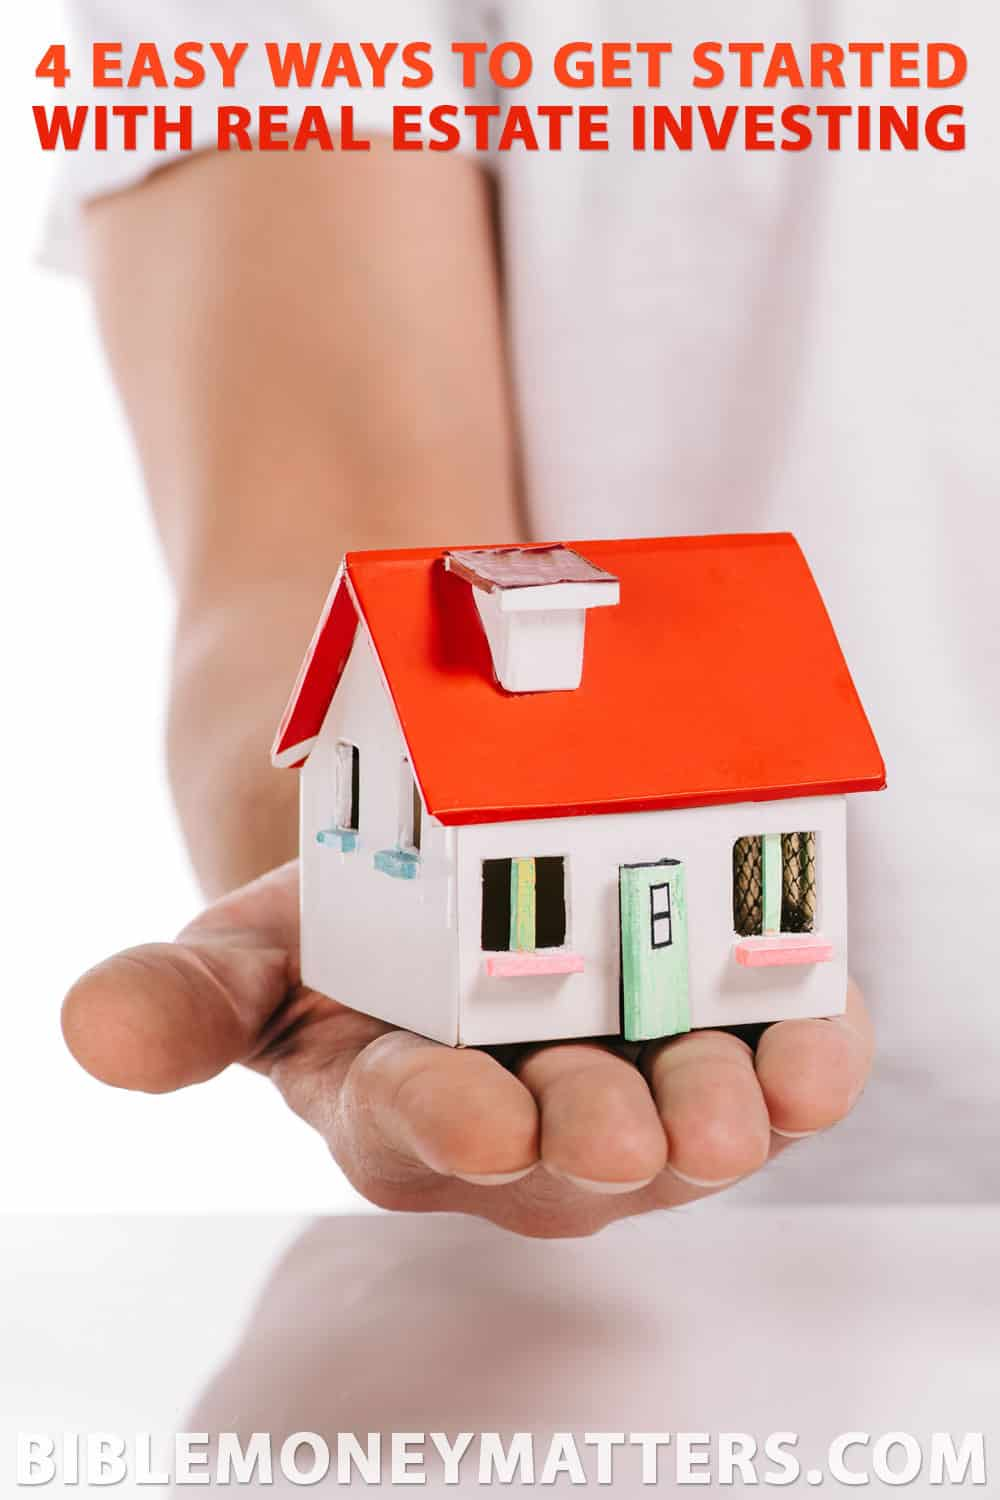 4 Easy Ways To Get Started With Real Estate Investing